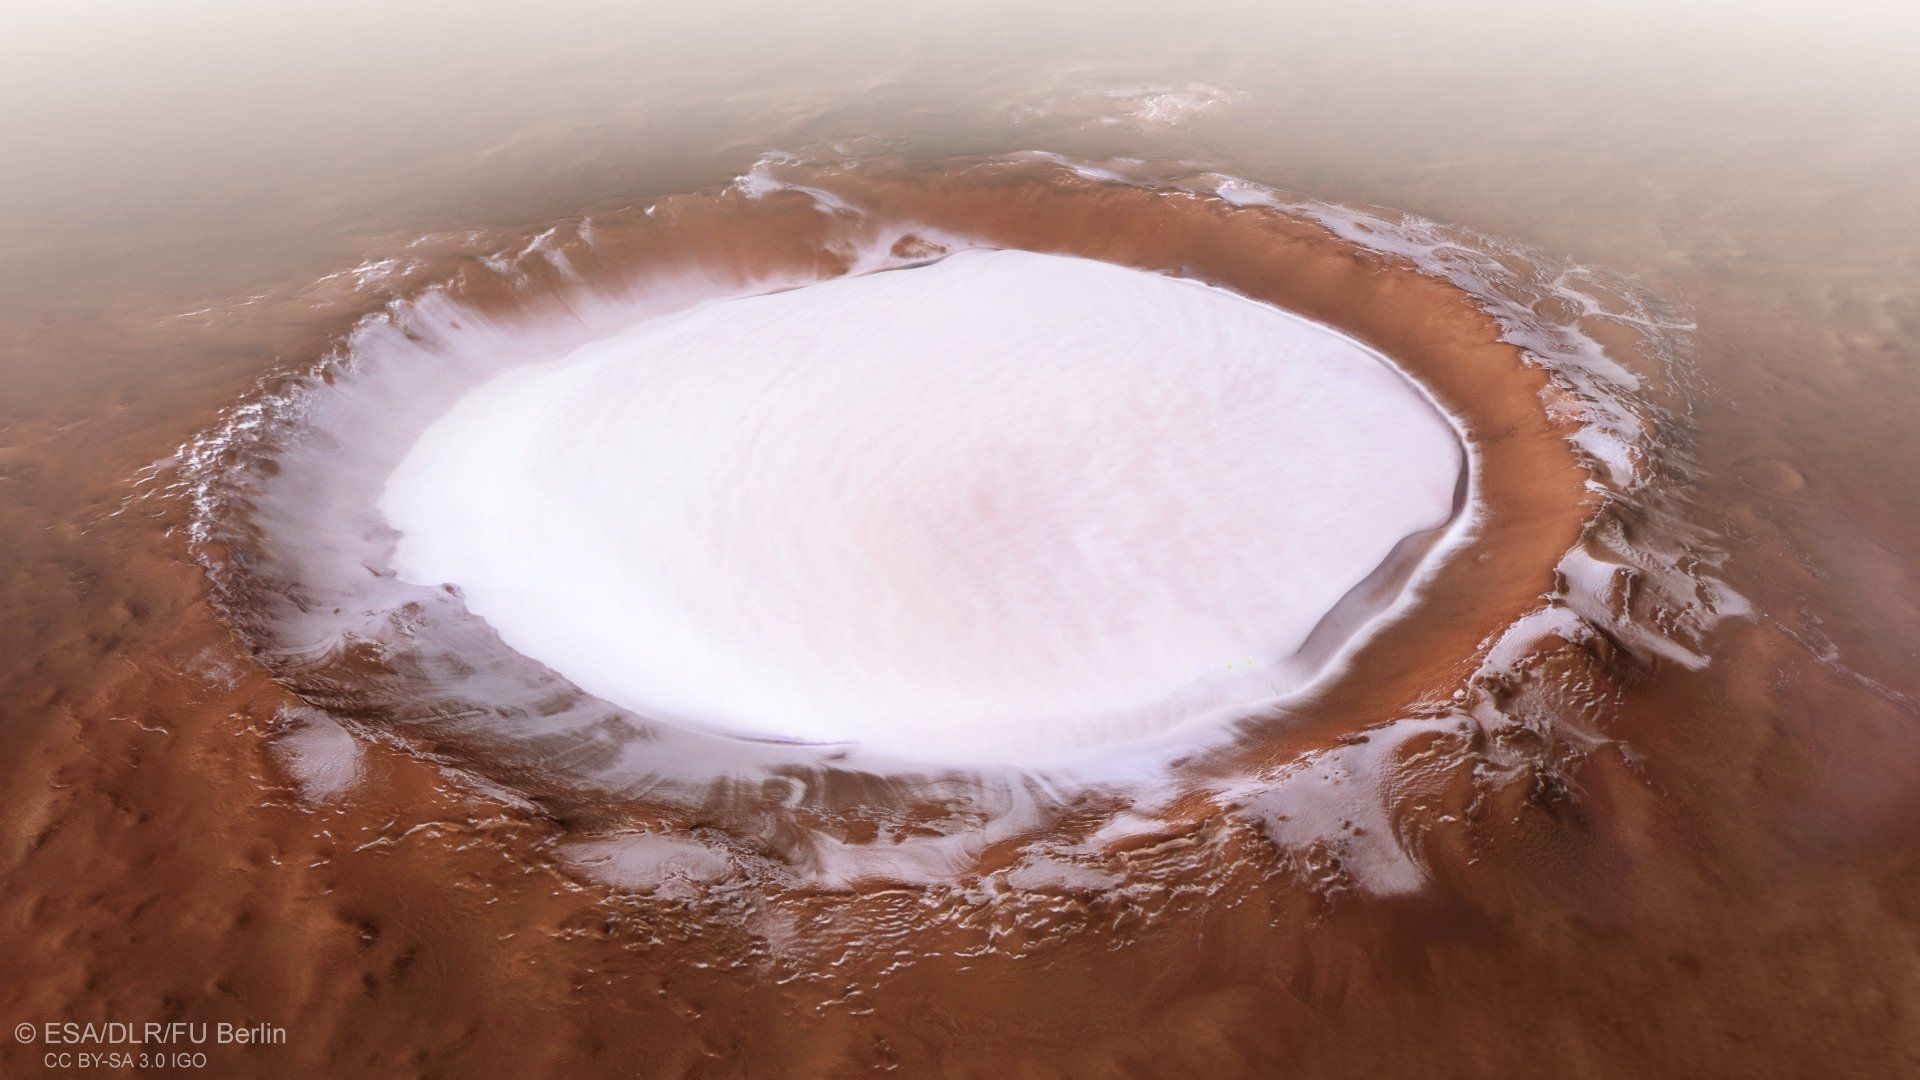 mars crater filled with liquid water by esa